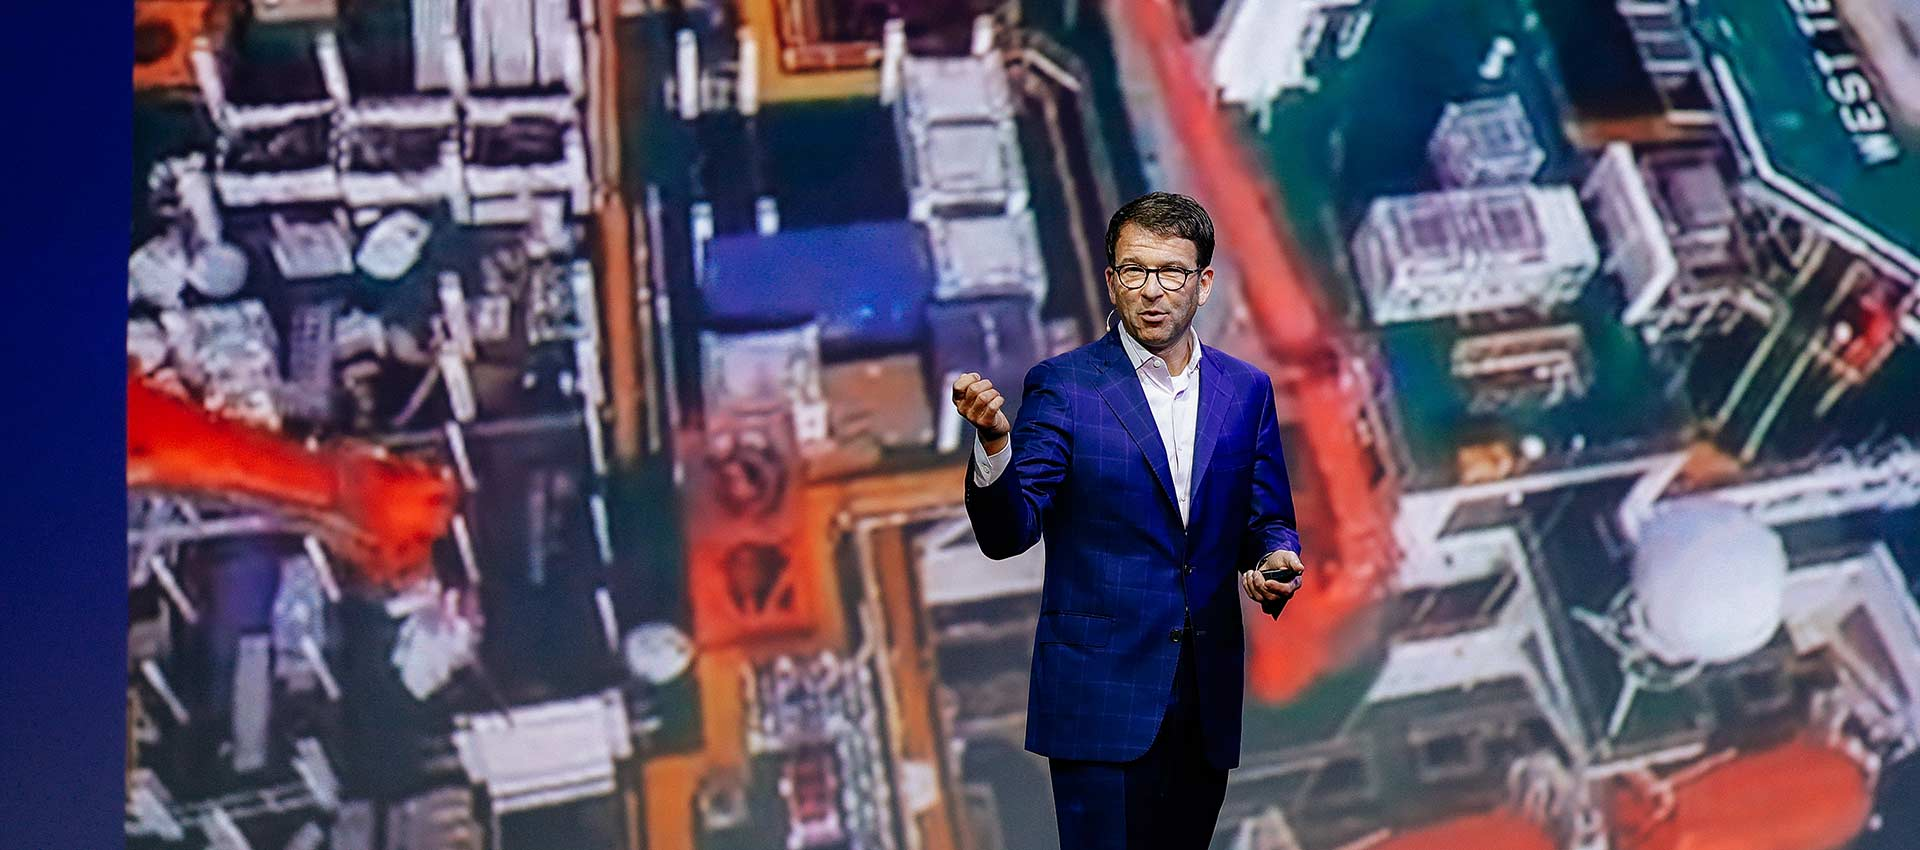 UNIFY 2019 - Judson Althoff